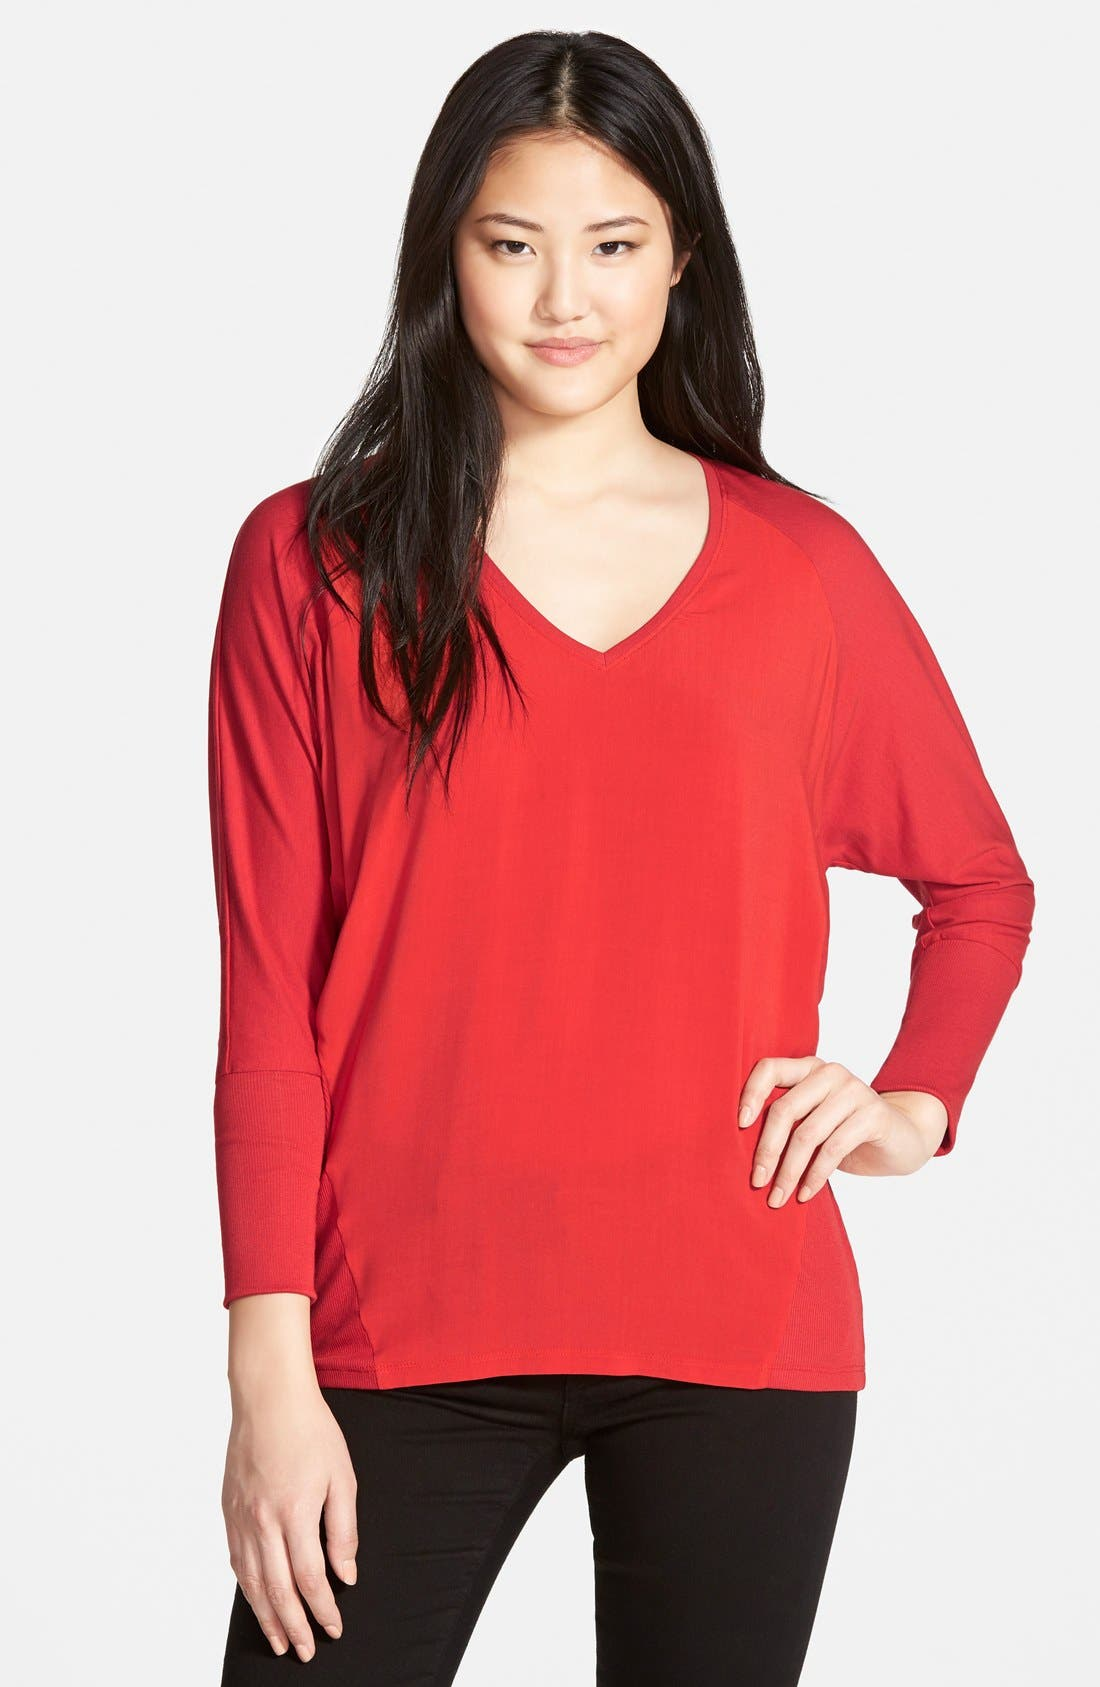 Main Image - Two by Vince Camuto 'Saturday' V-Neck Mixed Media Top (Regular & Petite) (Nordstrom Exclusive)